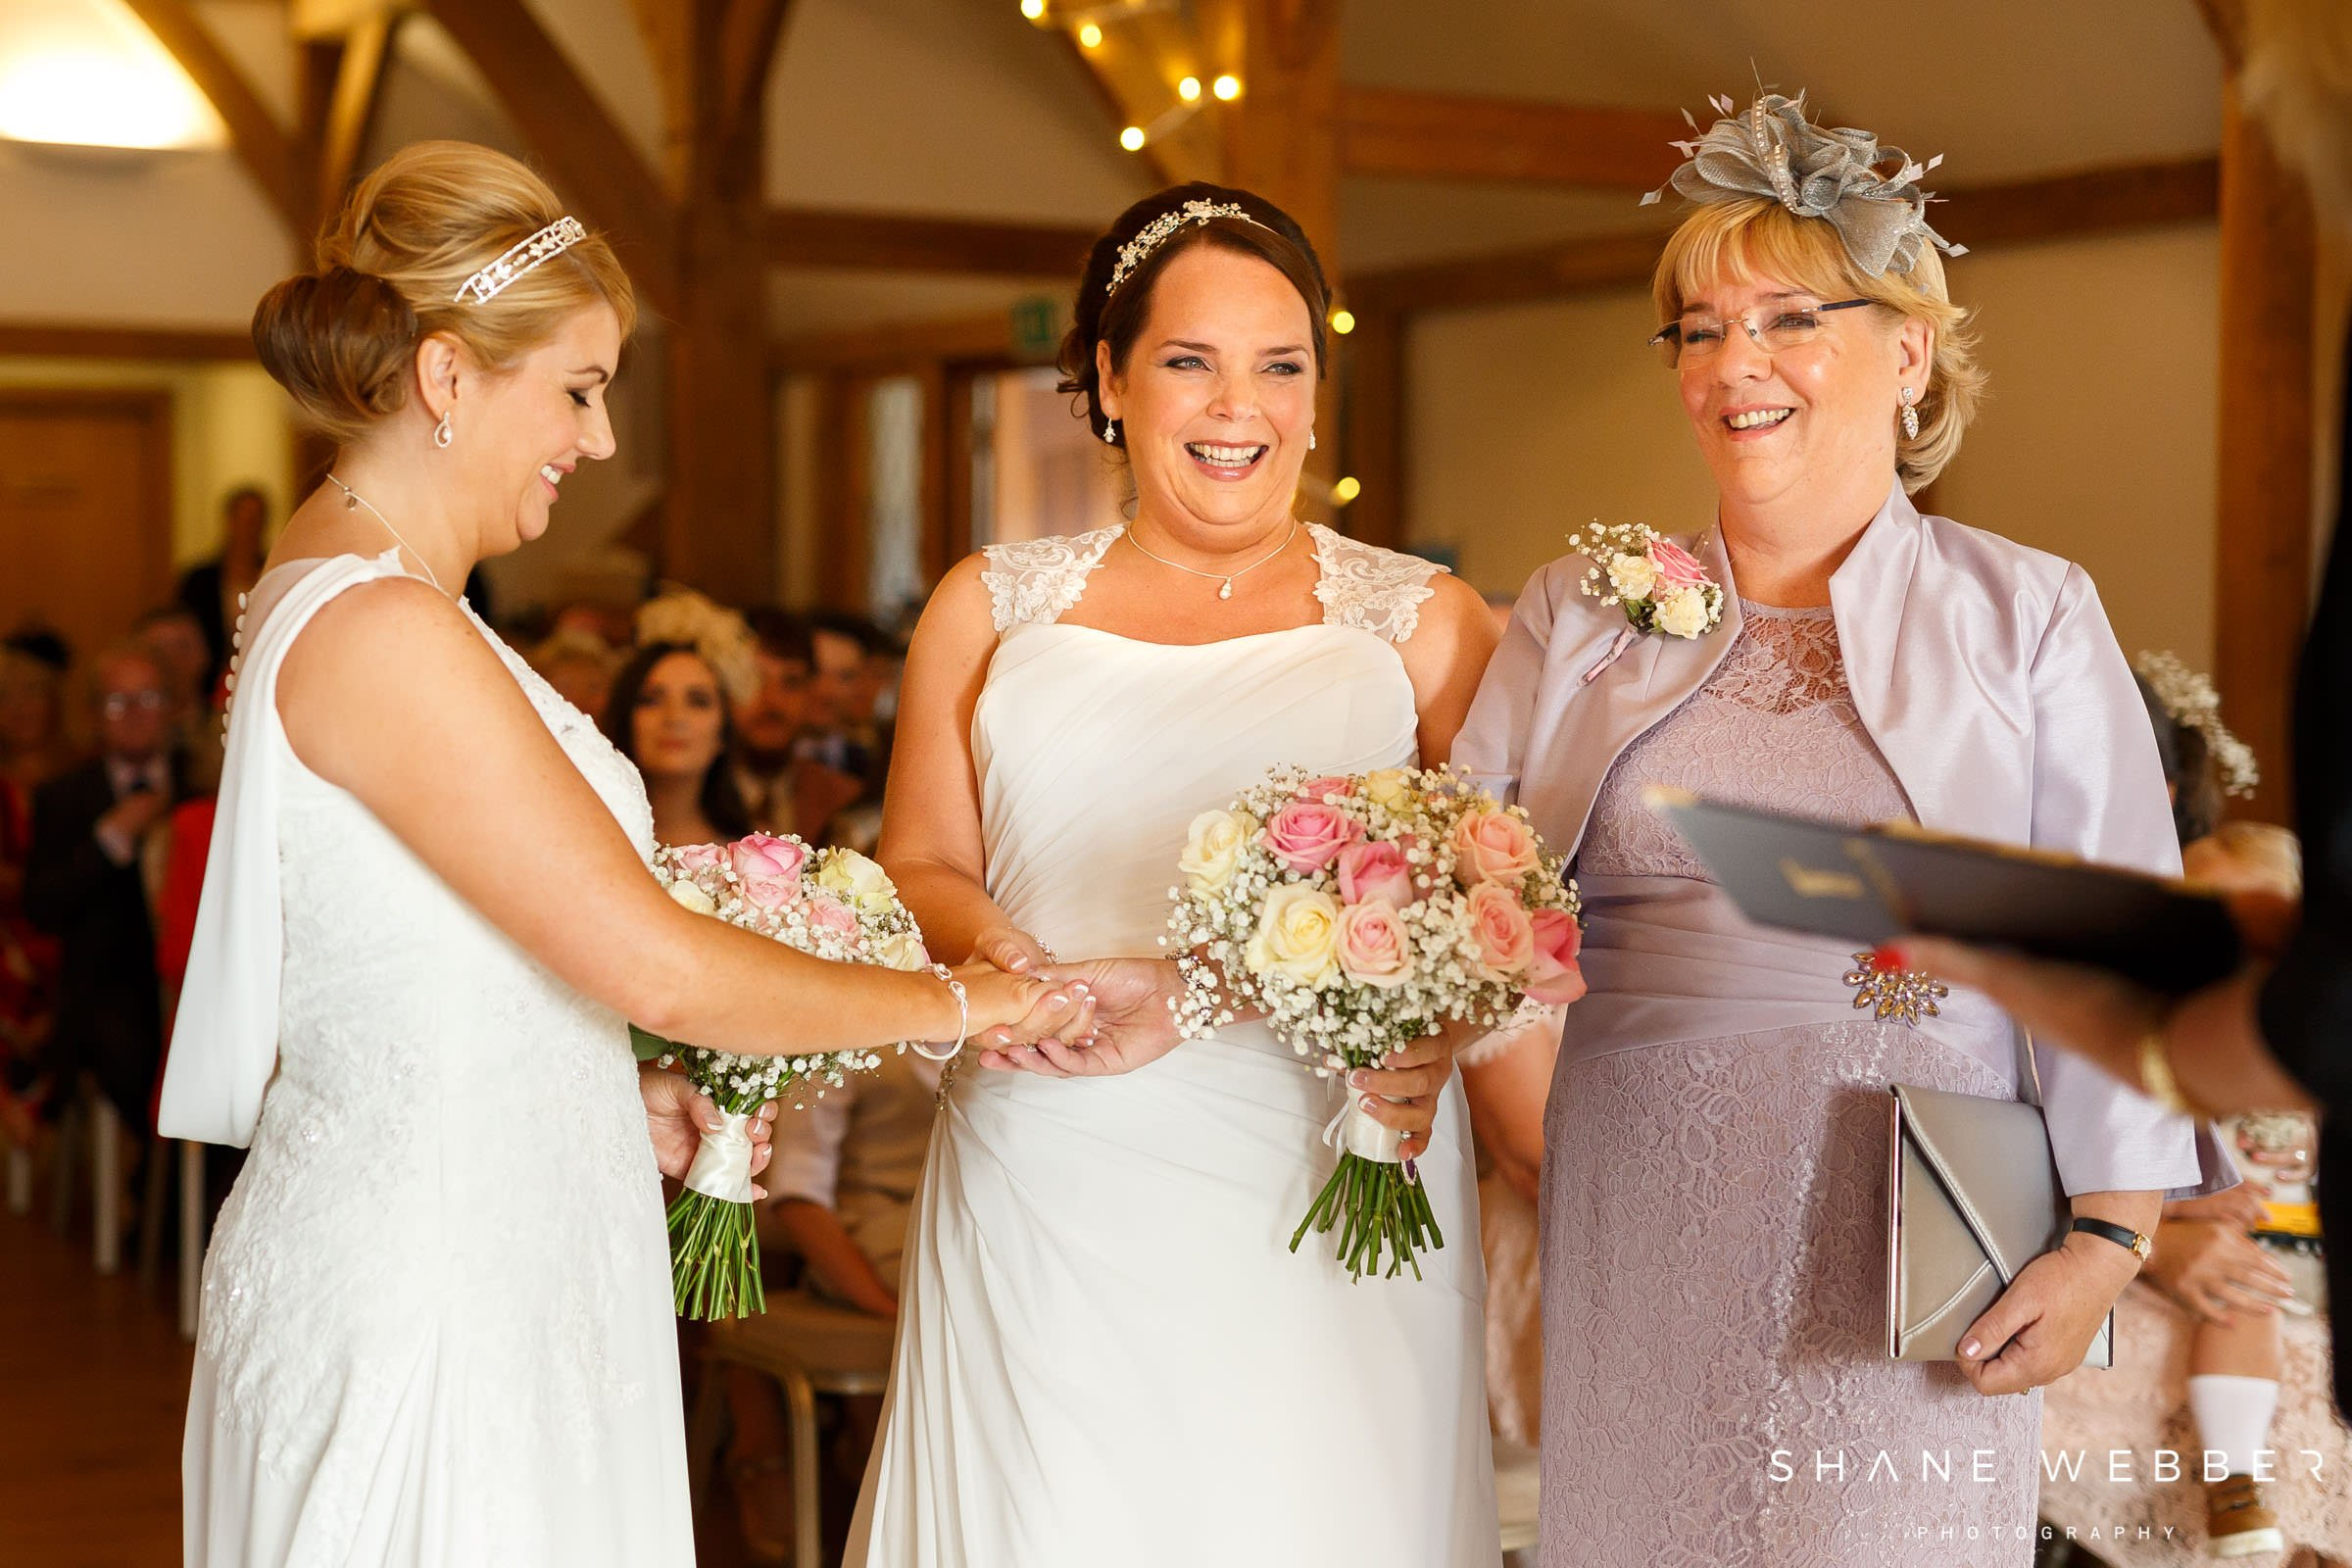 Sandhole Oak Barn weddings